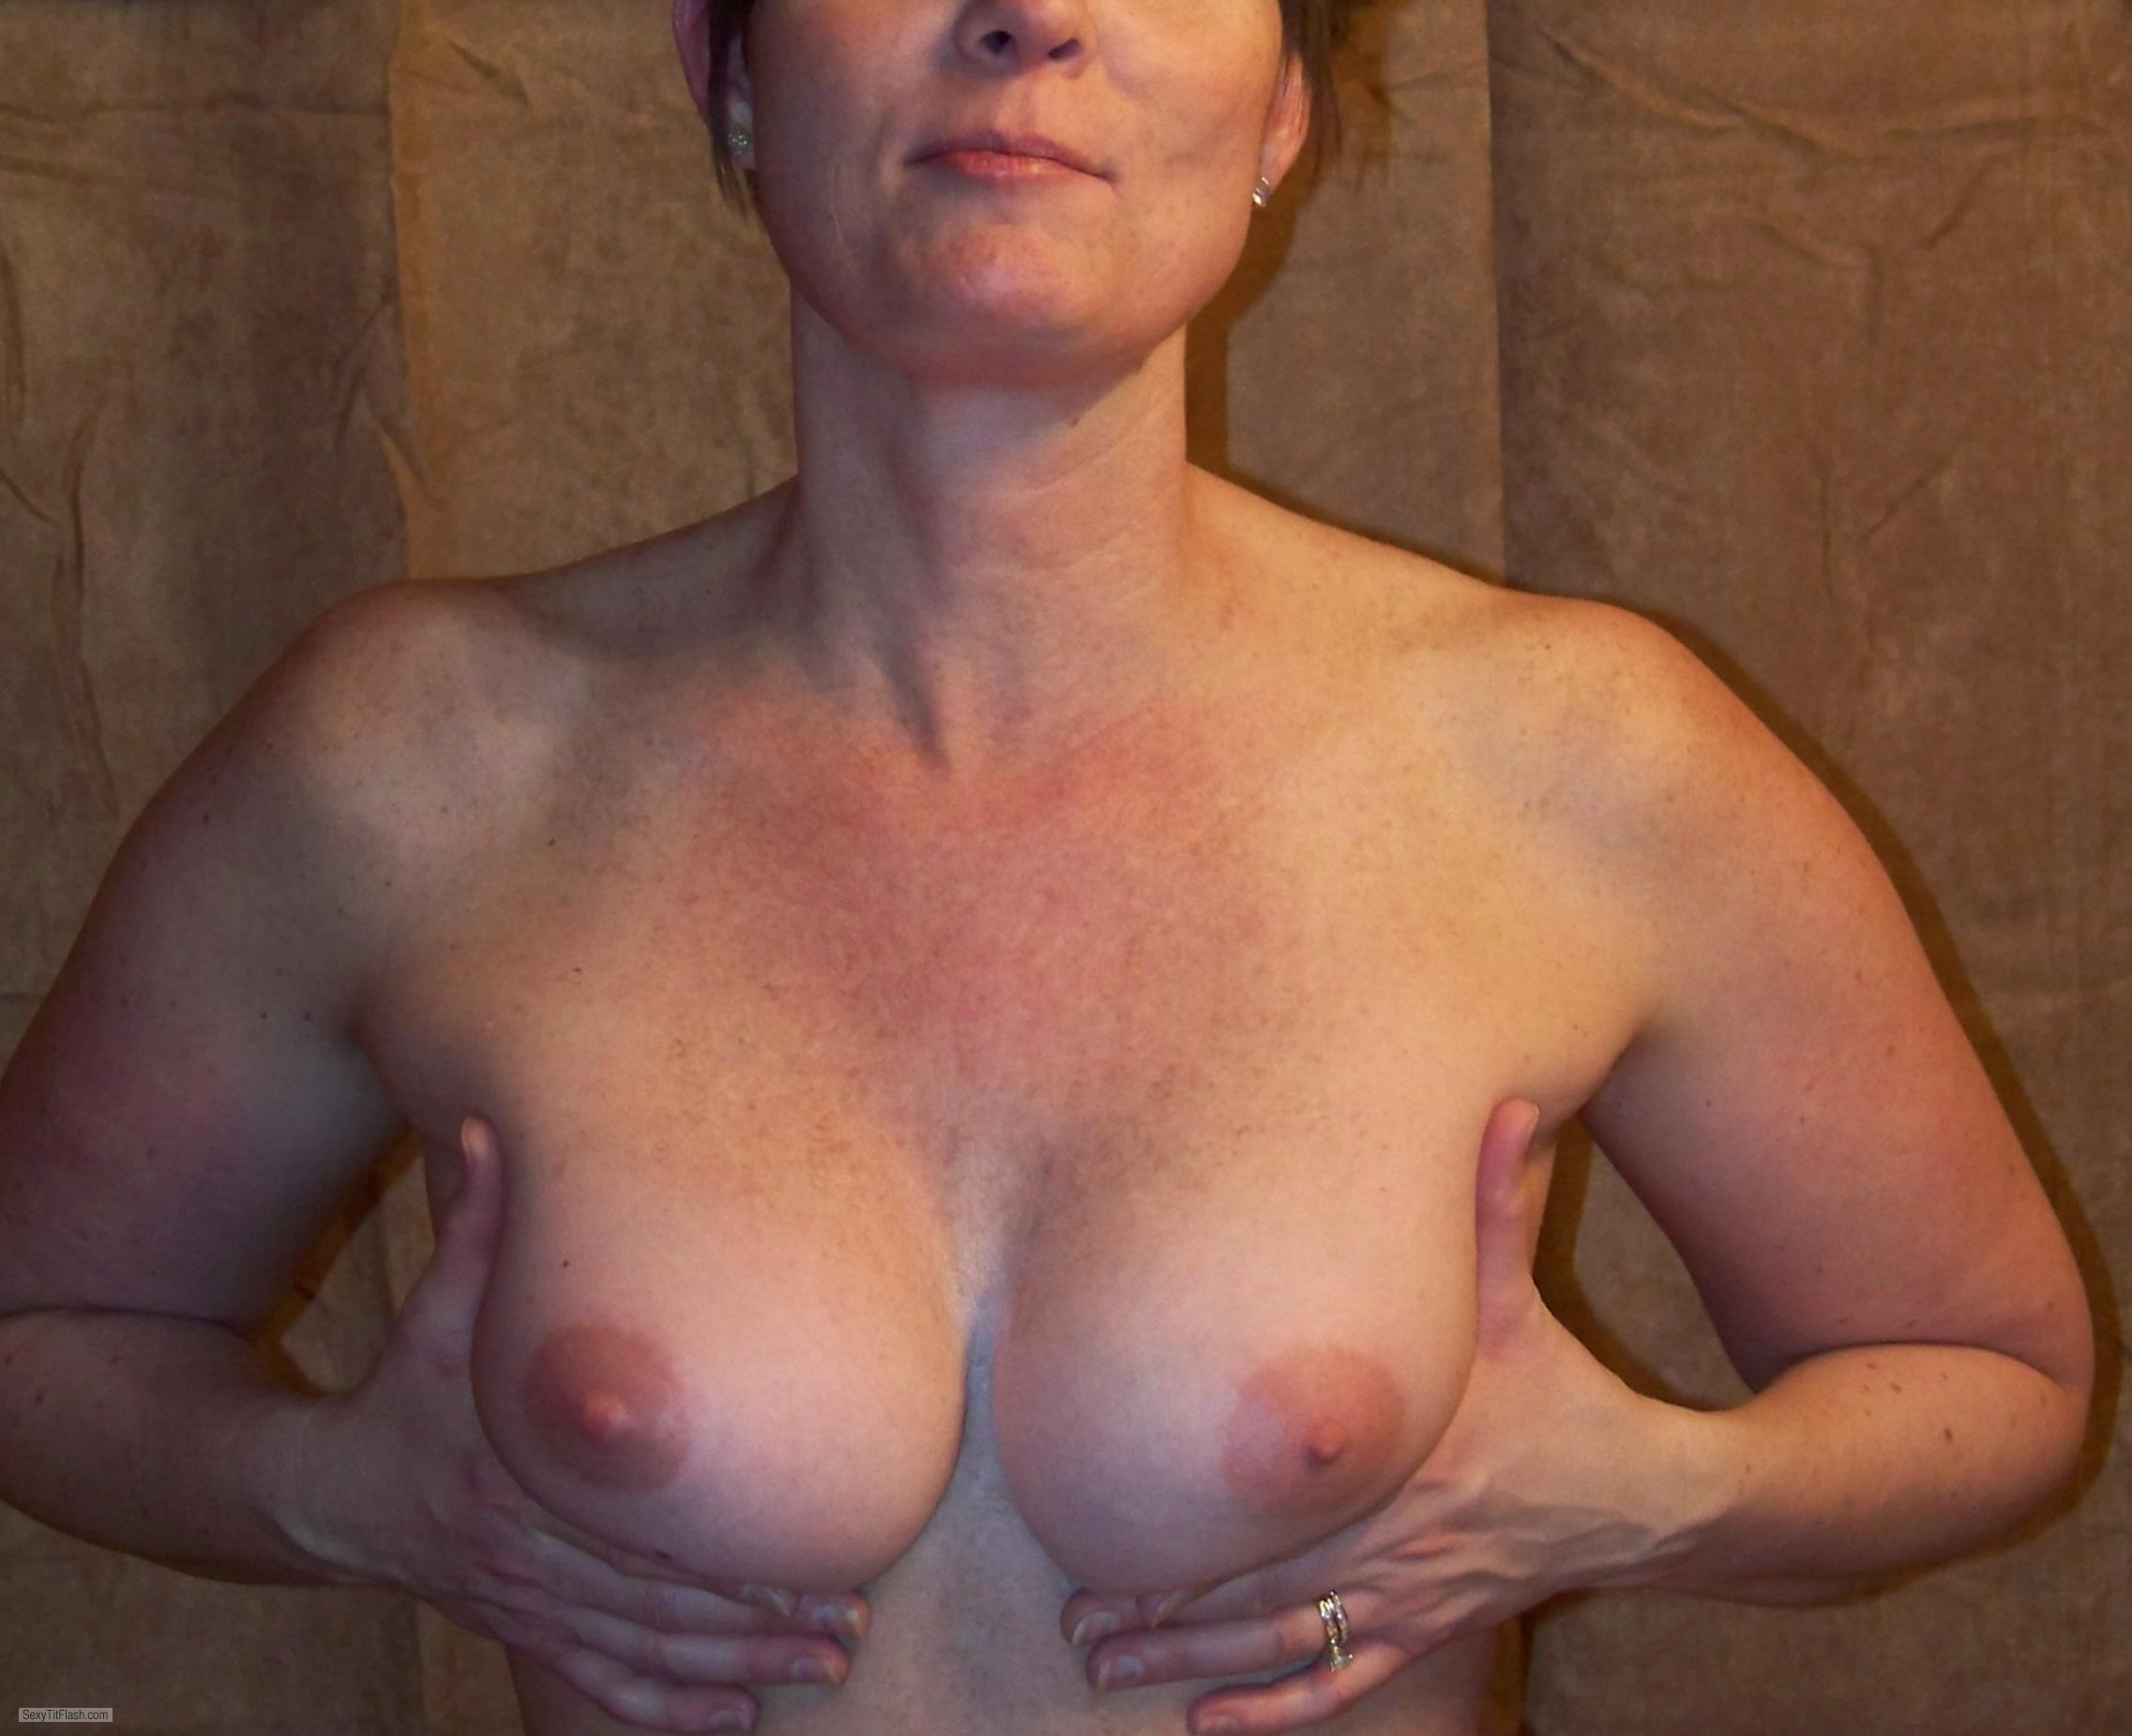 Tit Flash: My Medium Tits - Kate from United States